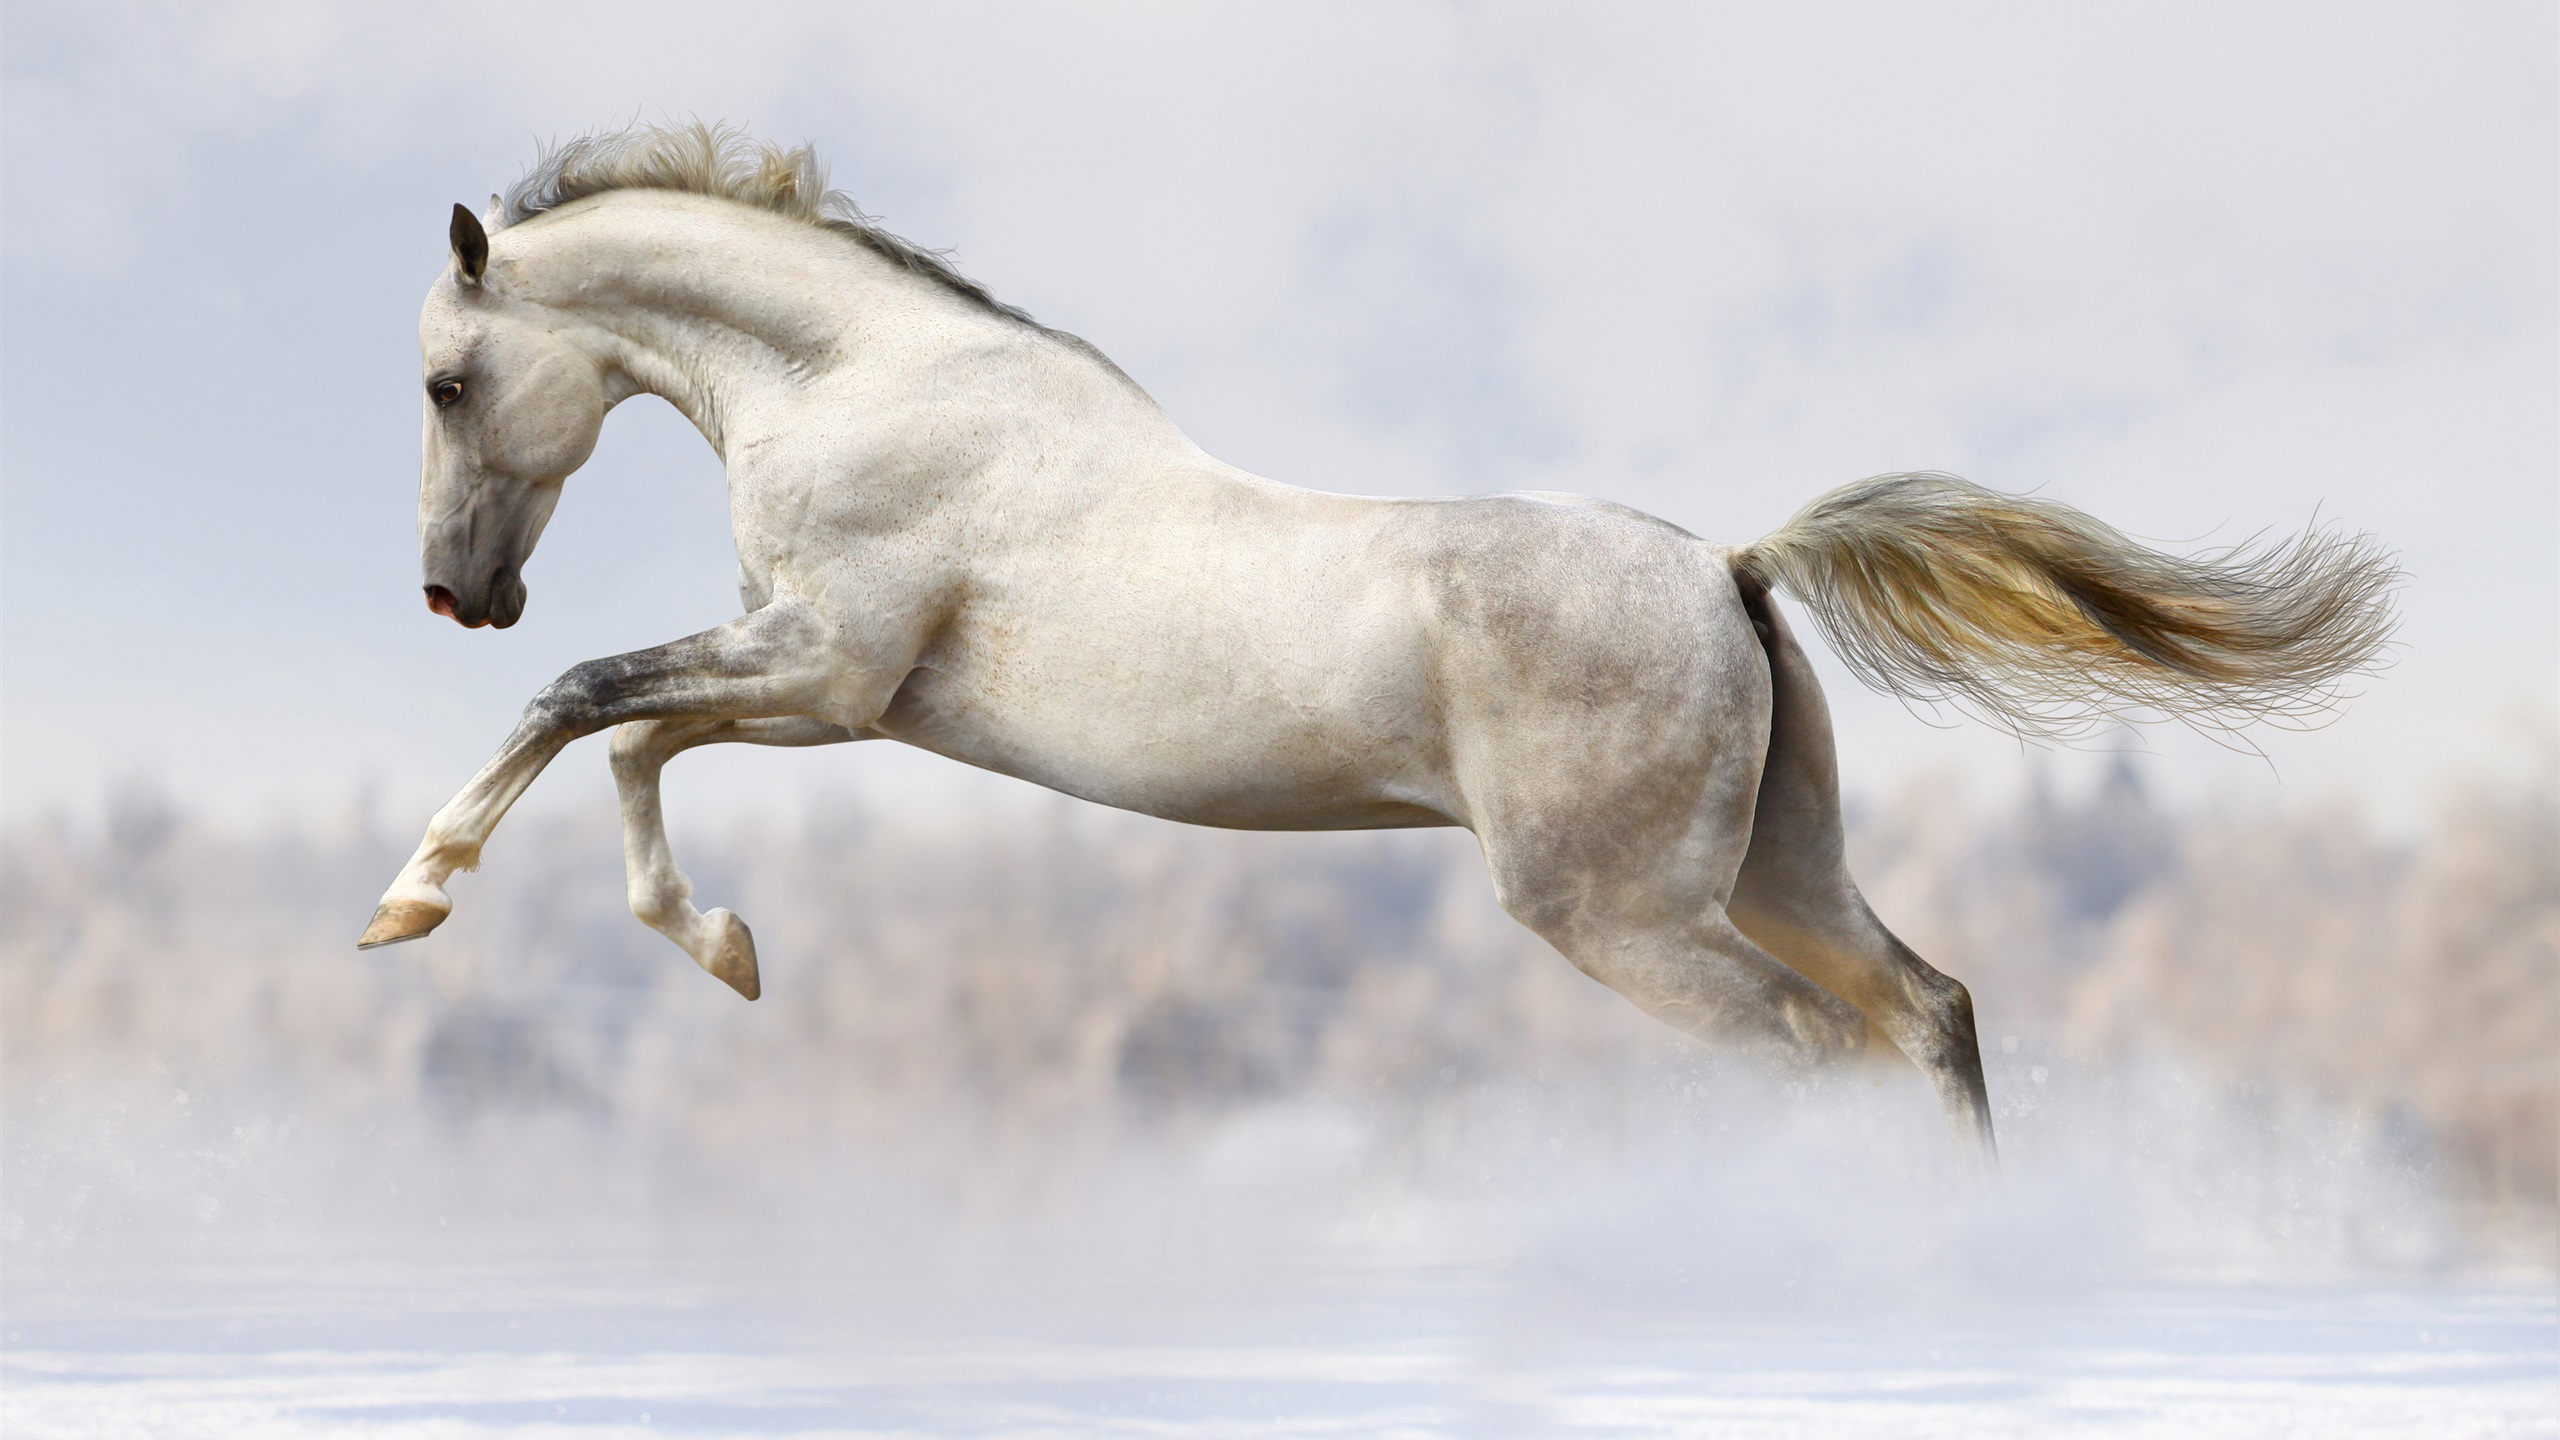 Wallpaper White Horse Fast Run 3840x2160 Uhd 4k Picture Image